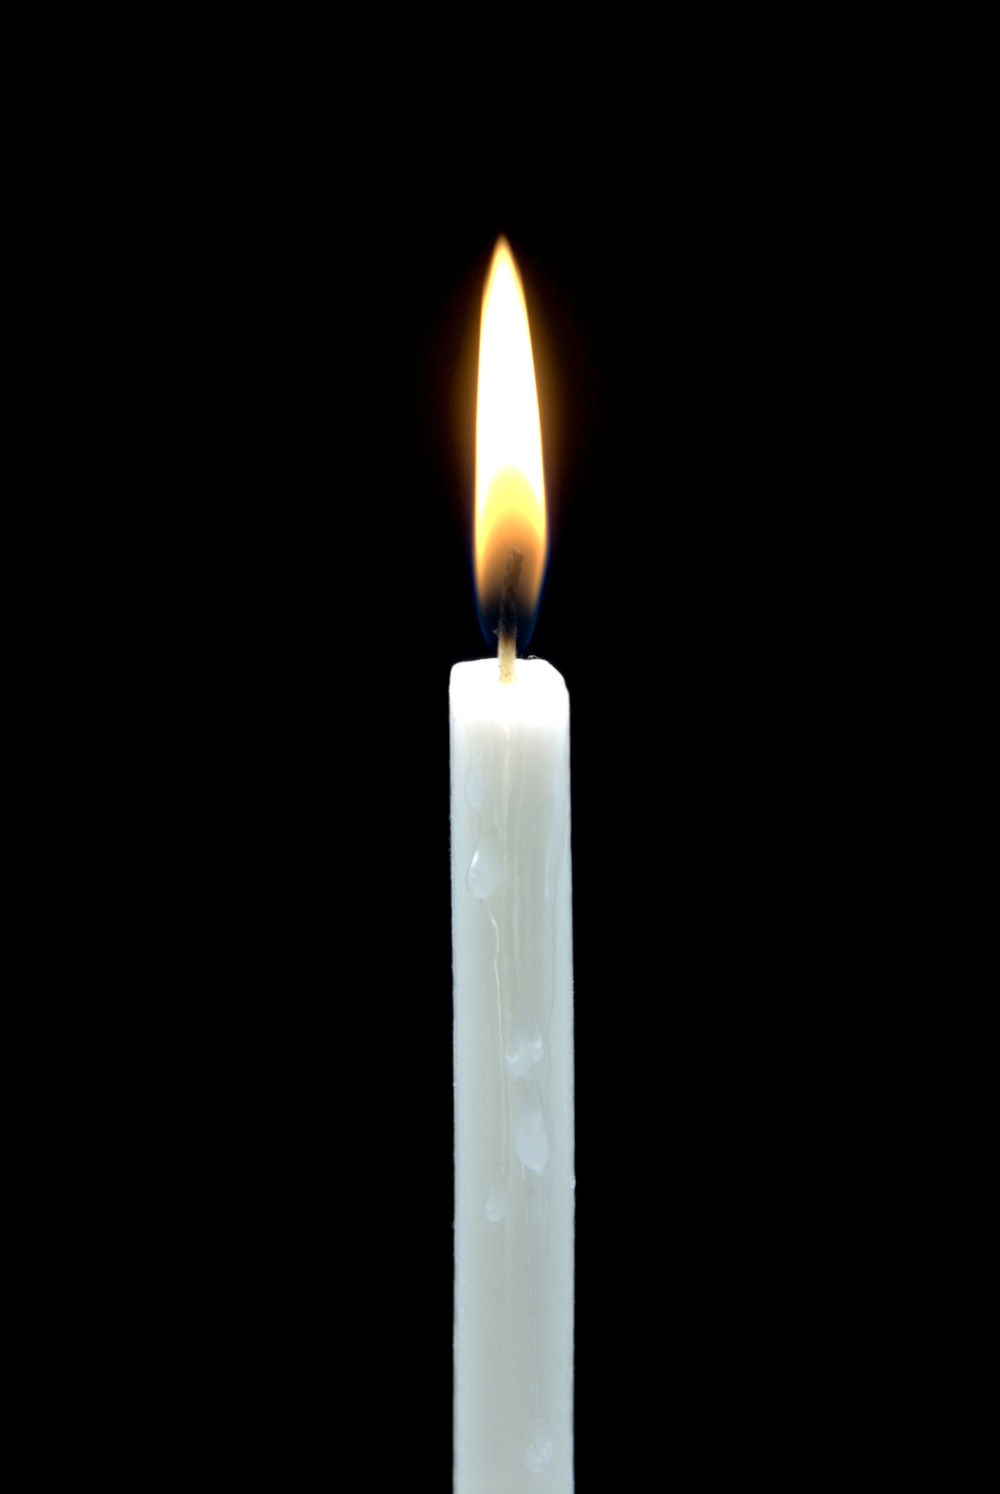 white lighted candle in dark room